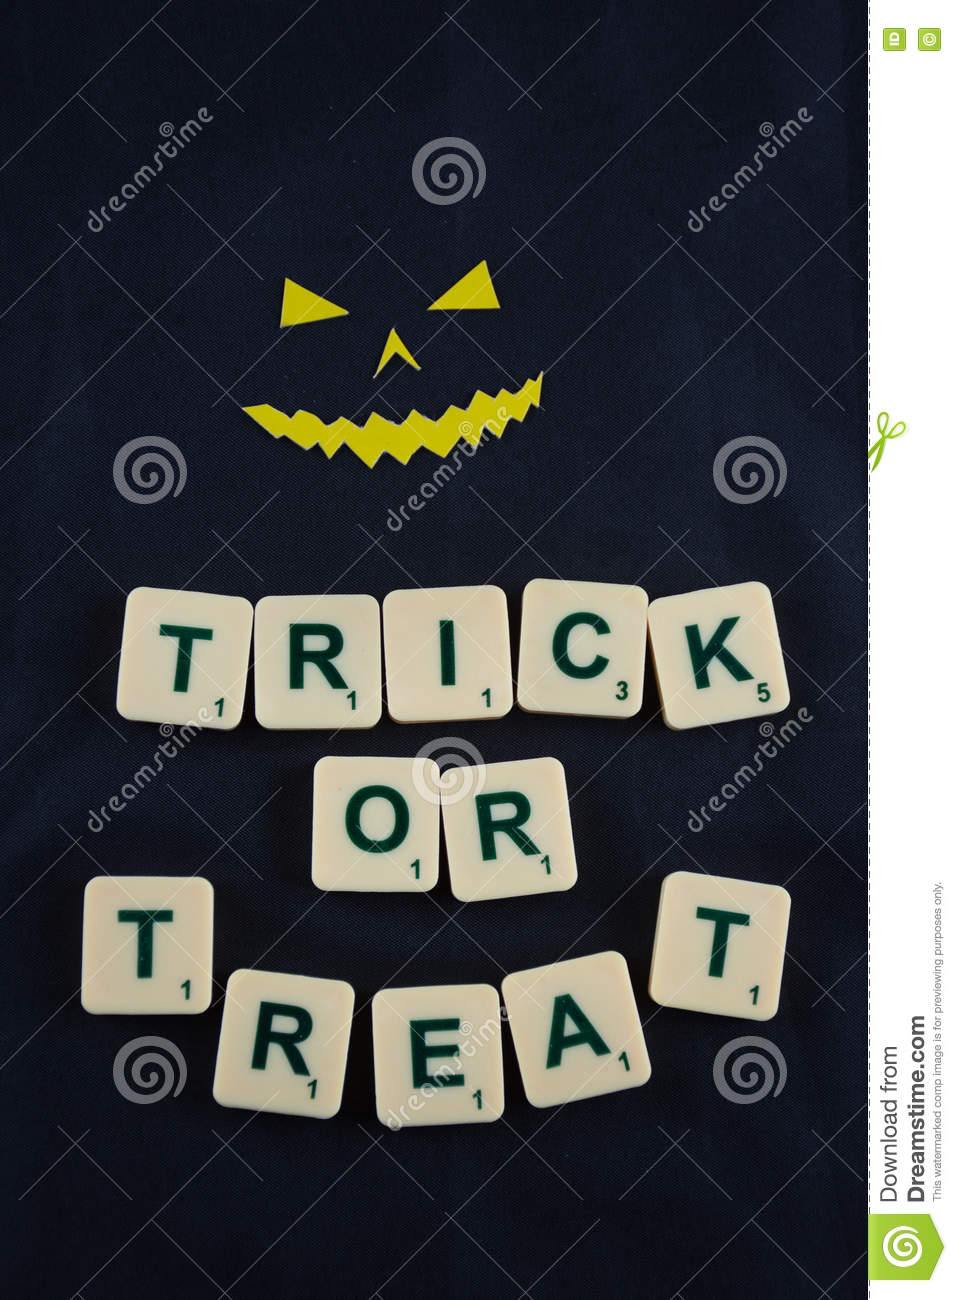 happy halloween wishes with demon face stock photo - image of